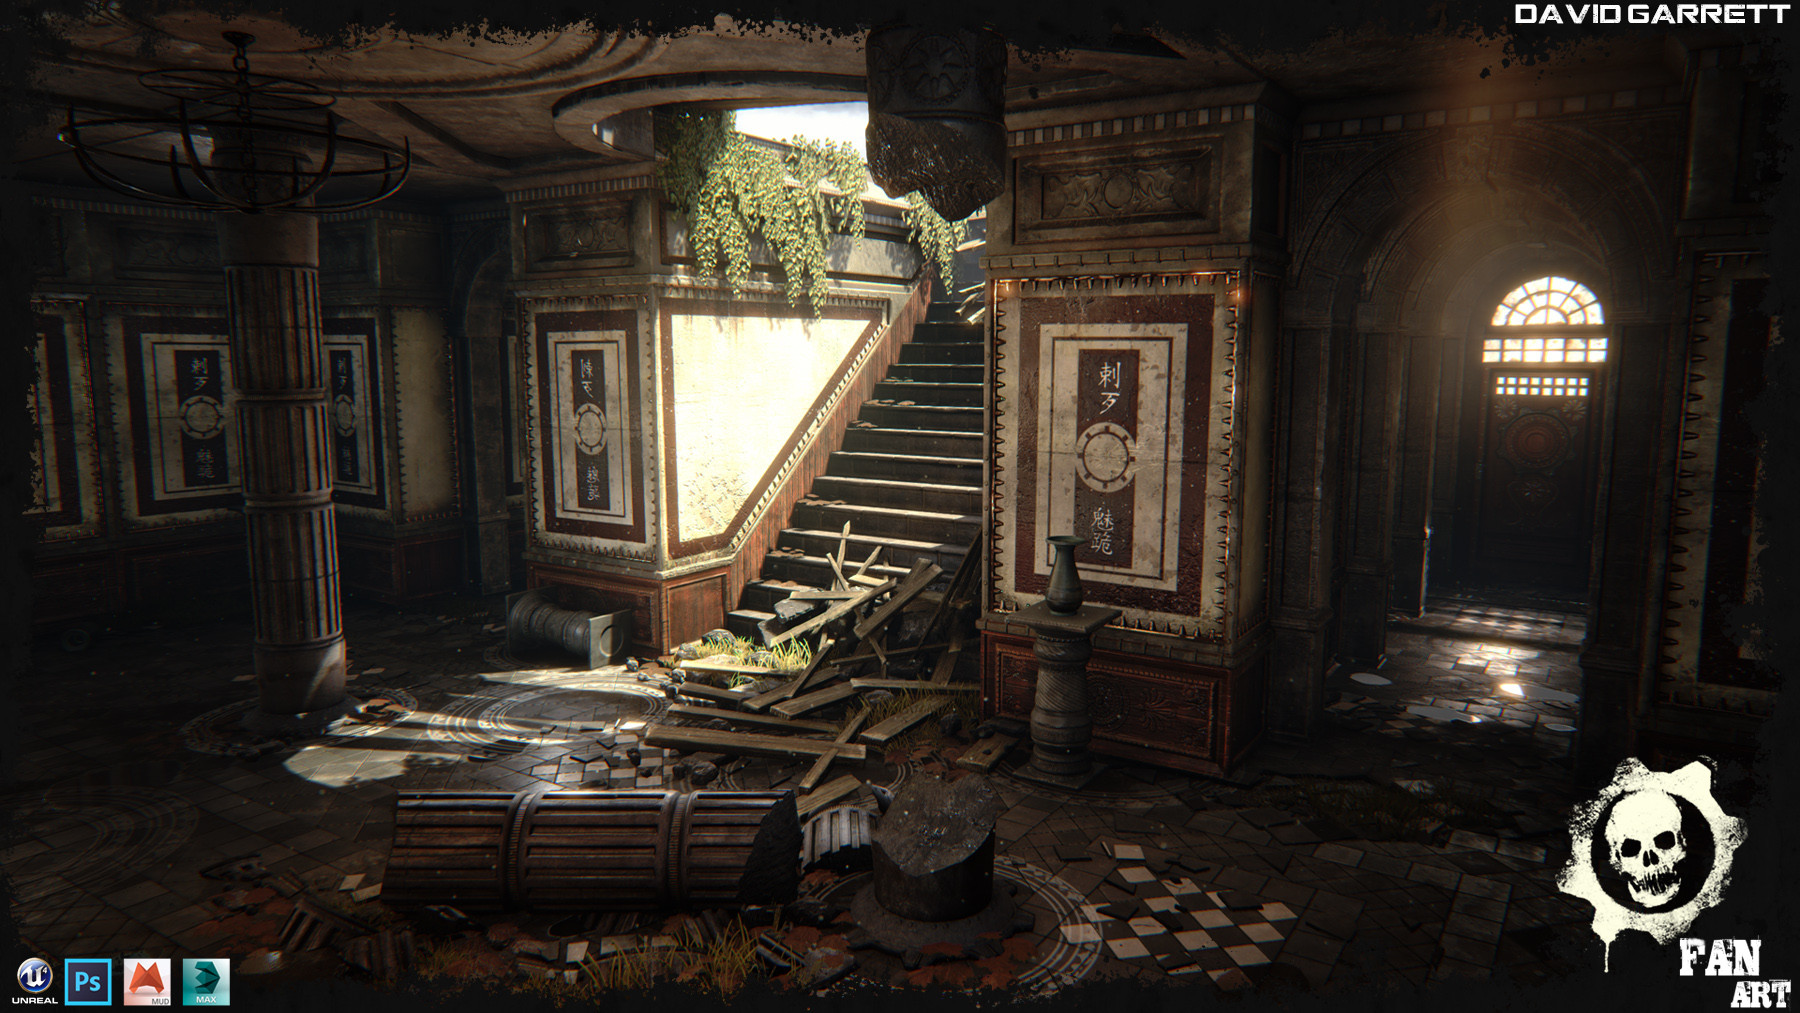 Gears Of War Map Recreated In Unreal Engine 4 [Finished ... on fallout 1 maps, call of duty mw2 maps, crackdown 1 maps, halo 1 maps, bioshock 1 maps, cod black ops 1 maps, grand theft auto 1 maps, resident evil 1 maps, dead space 1 maps, borderlands 1 maps, gears of war judgement maps, call of duty 4 maps, unreal 1 maps, modern warfare 1 maps, star wars battlefront 1 maps, gears of war 4 maps, devil may cry 1 maps, gears of war 2 maps, battlefield 1 maps, portal 1 maps,